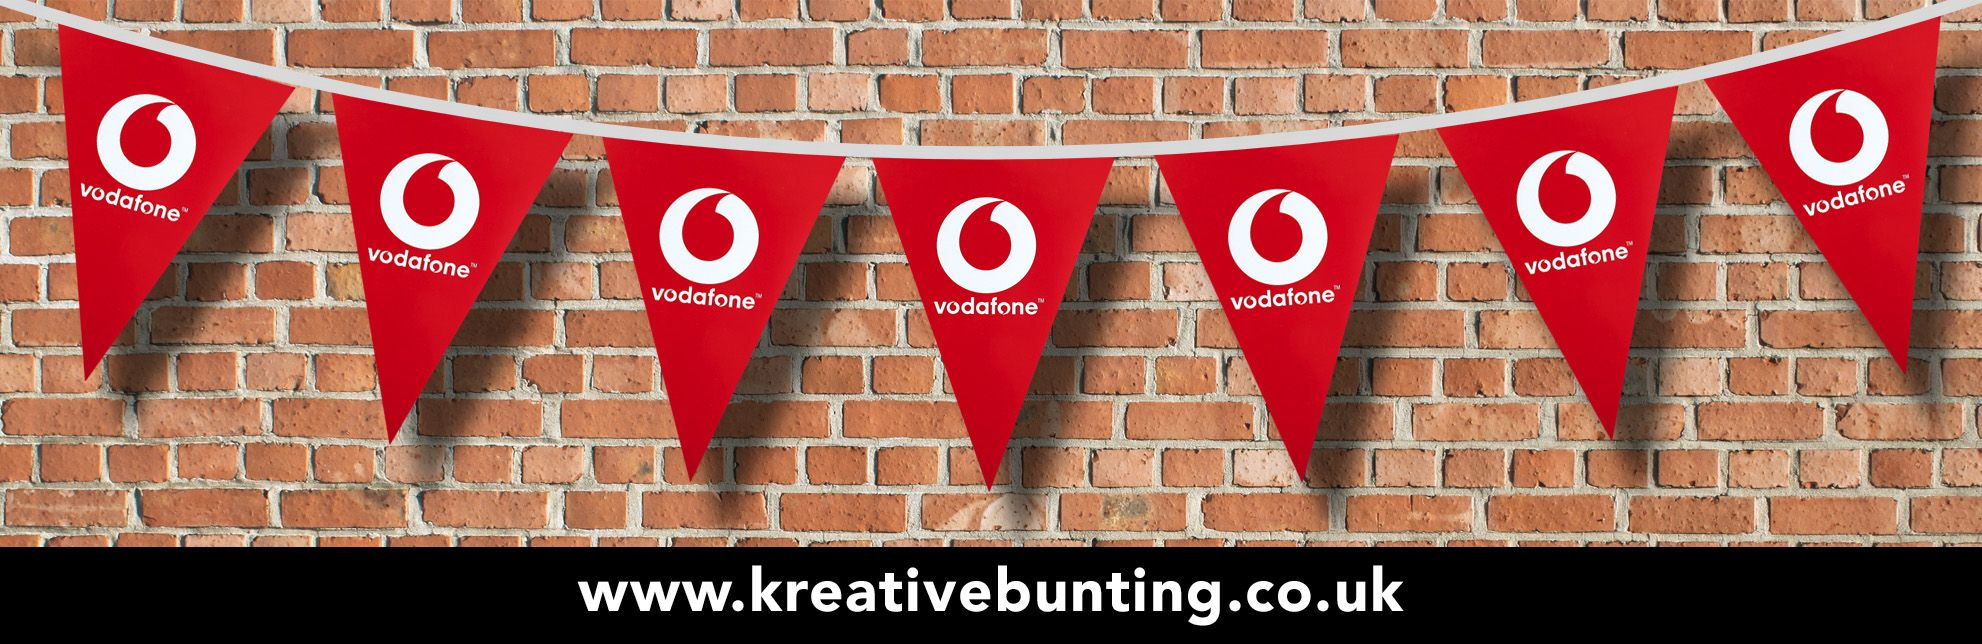 Vodafone Promotional Bunting With Images Bunting Co Uk Produce